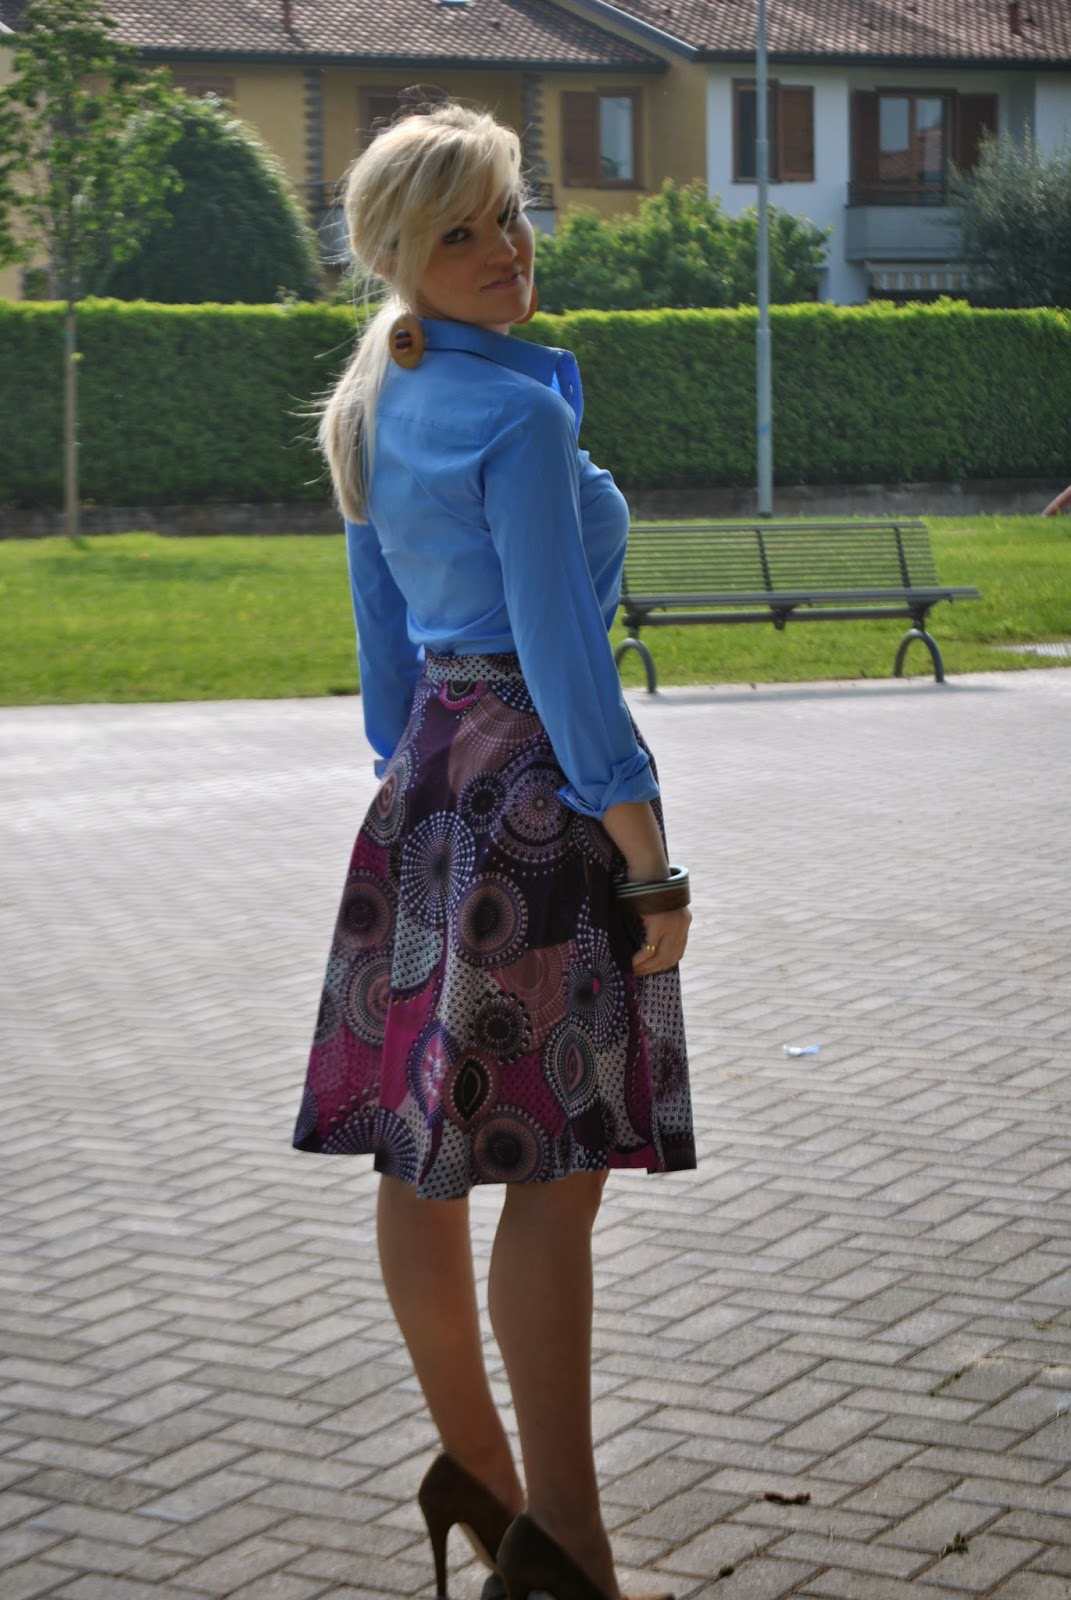 outfit gonna a ruota outfit midi skirt outfit gonna a ruota anni '50 outfit gonna a ruota stile stella jean outfit gonna a ruota etnica come abbinare la gonna a ruota abbinamenti gonna a ruota colorblock by felym blog di mariafelicia magno outfit di mariafelicia magno fashion blogger come abbinare la gonna ruota outfit camicia e gonna ruota outfit camicia celeste con maniche arrotolate outfit accessori in legno outfit orecchini fornarina fashion blogger milanooutfit primaverili outfit primavera 2014 outfit maggio 2014 outfit gonna a ruota e tacchi